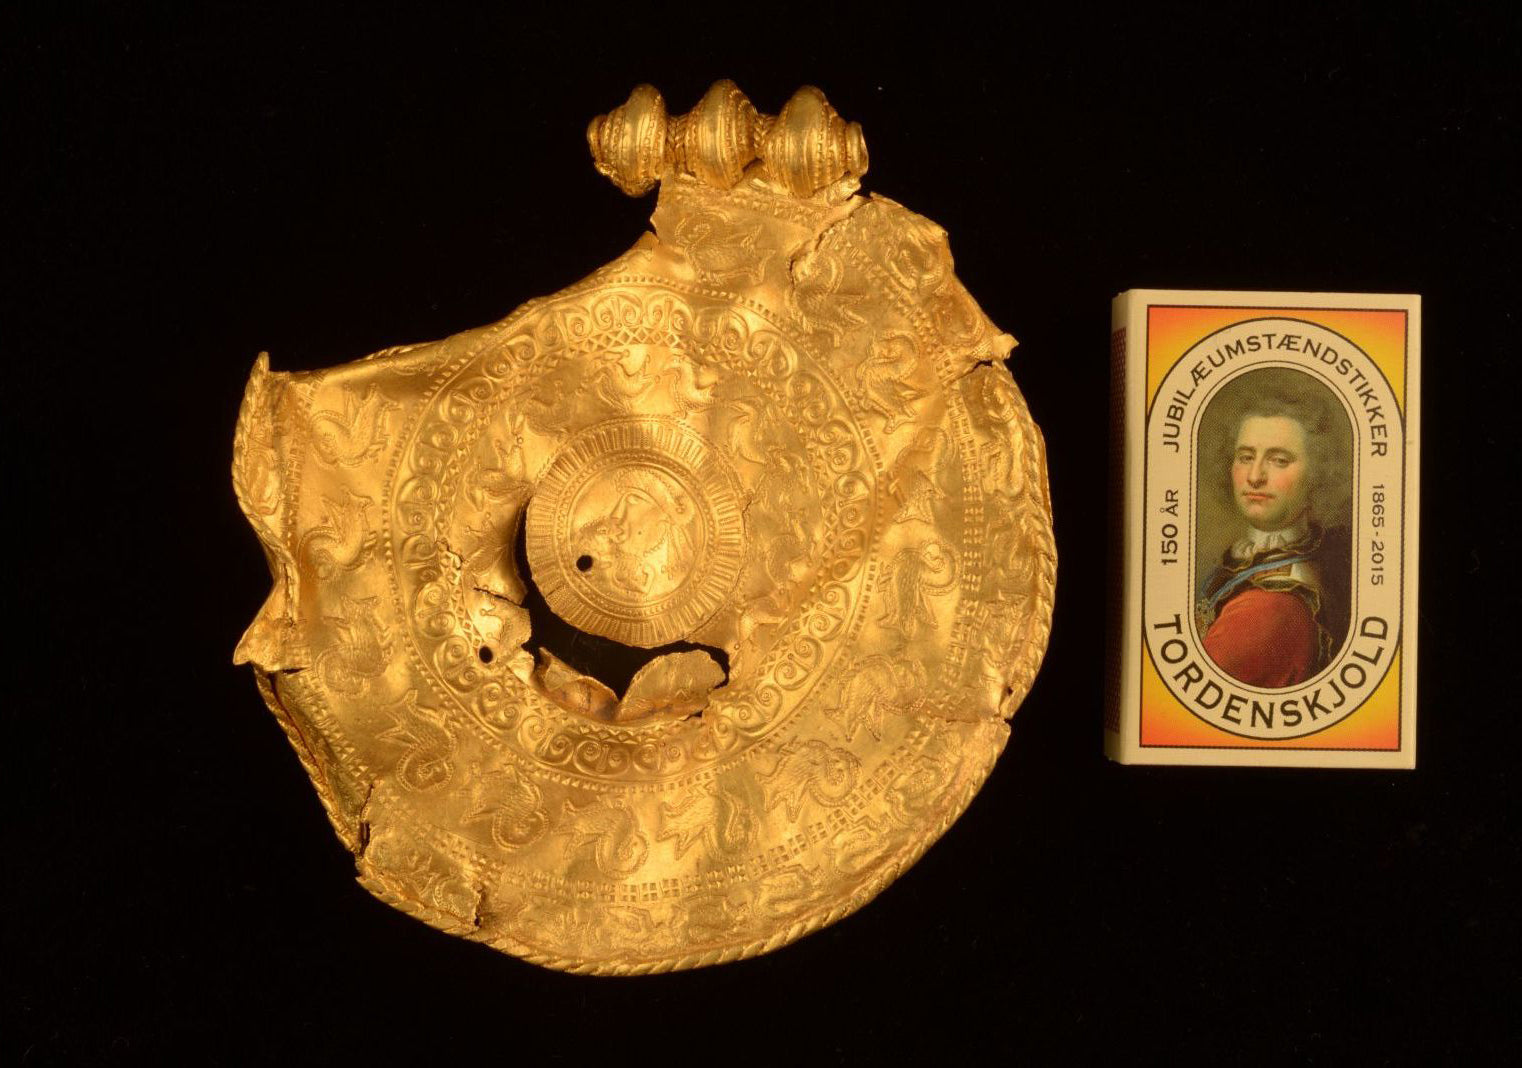 Extraordinary Ancient Gold Treasure Discovered in Denmark